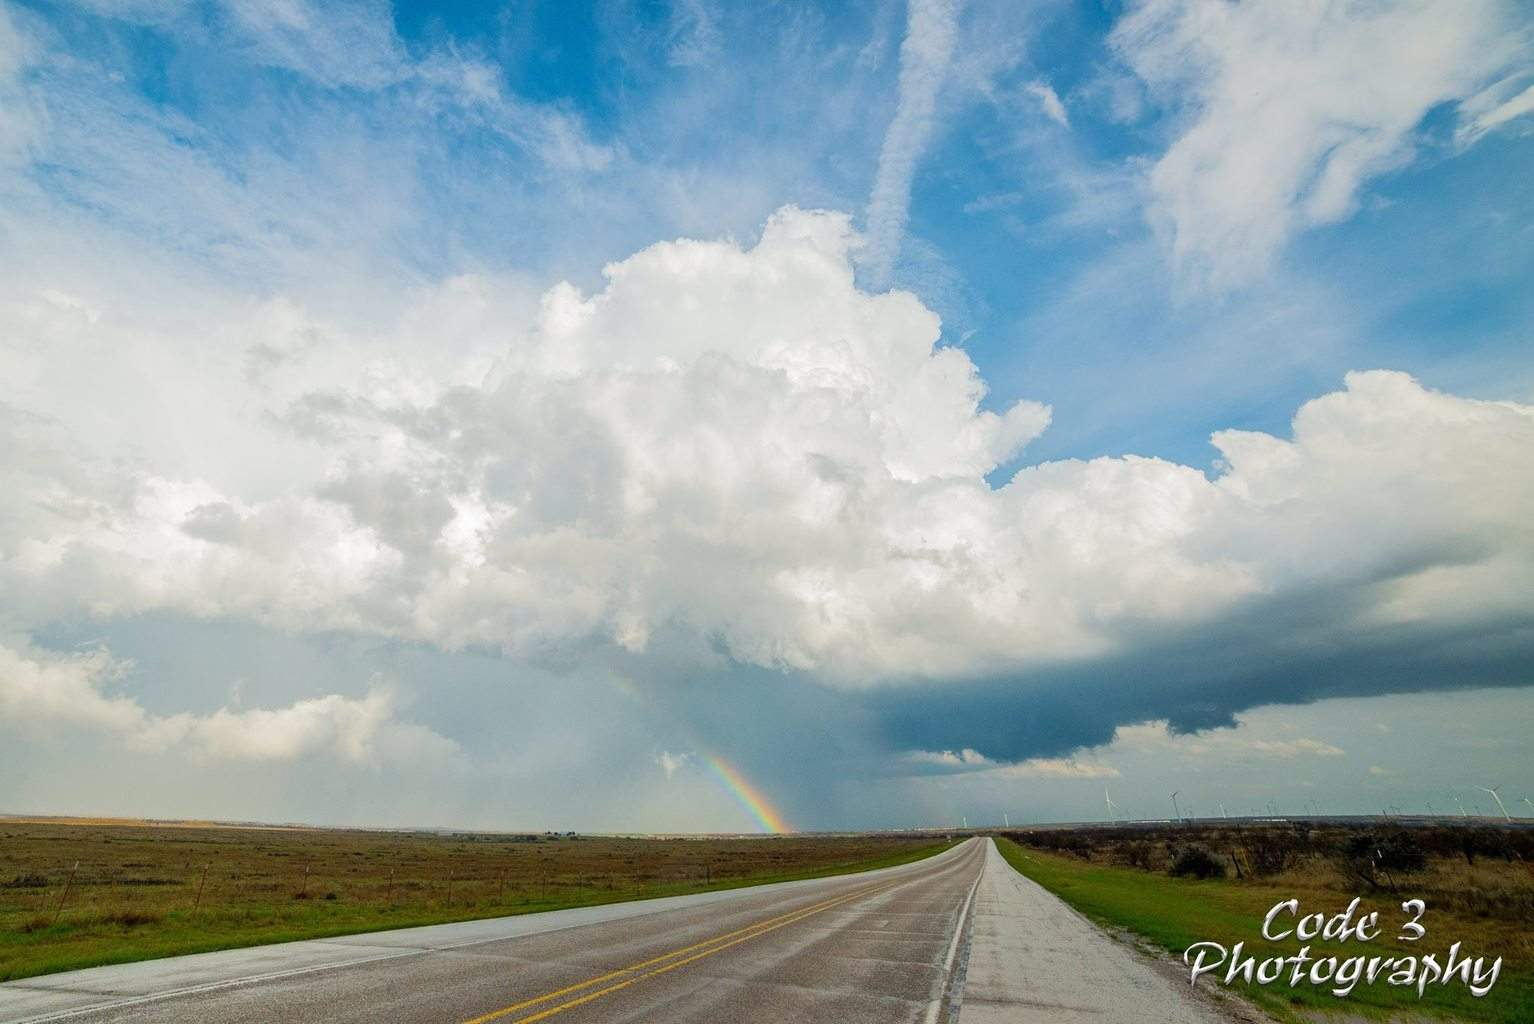 Shot from the Backside of the Storms in Texas today. 3/19/14 Joy, TX